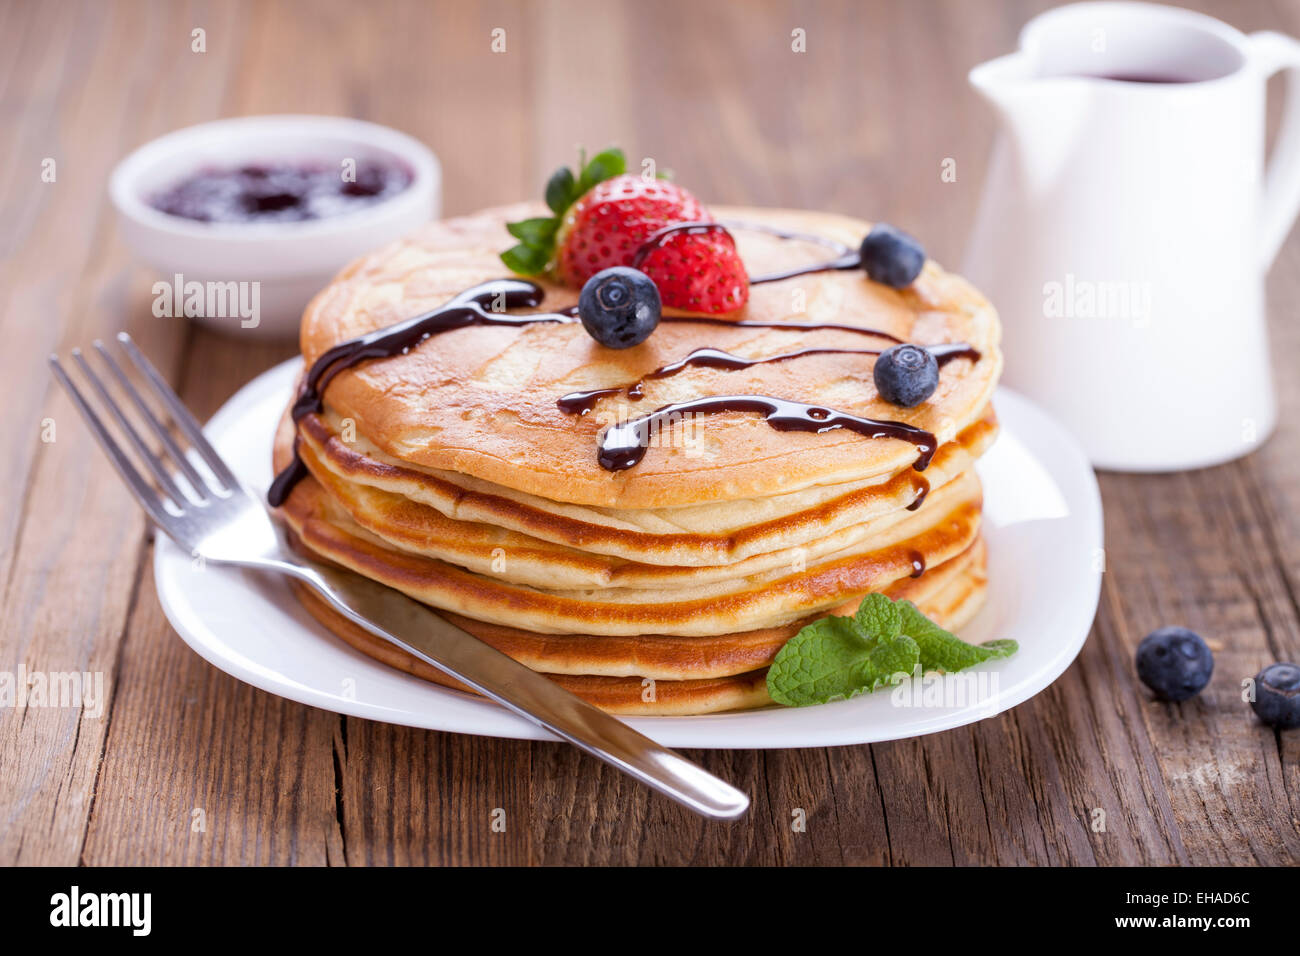 Delicious sweet American pancakes on a plate with fresh fruits and addons. - Stock Image